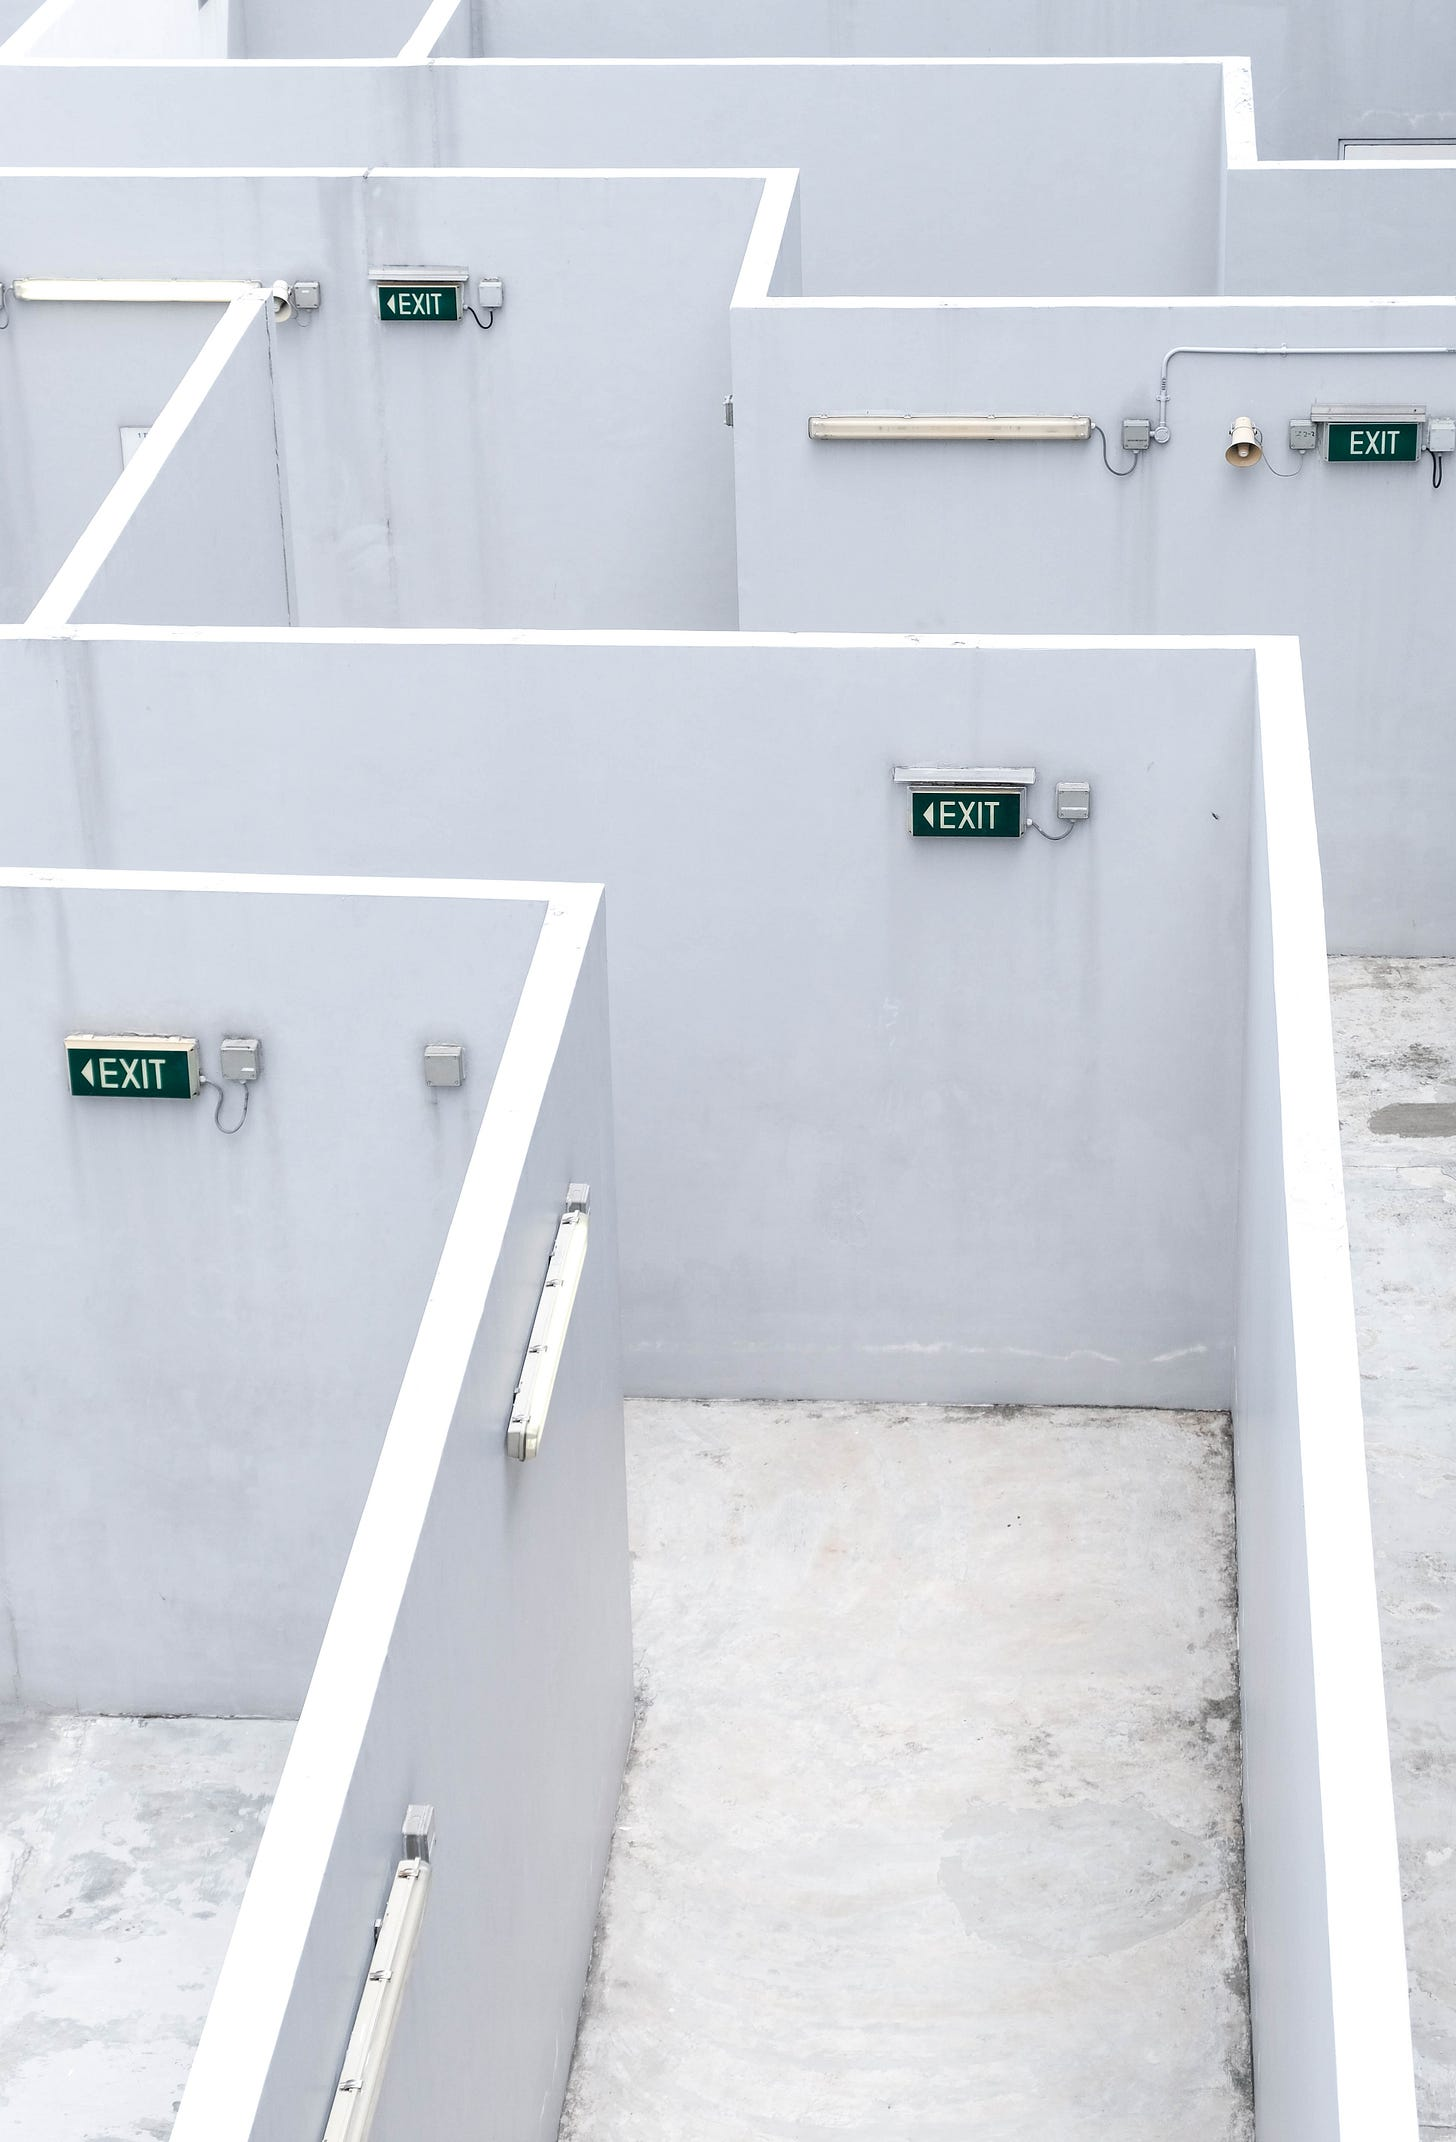 Photo of a maze with white walls and several green exit signs